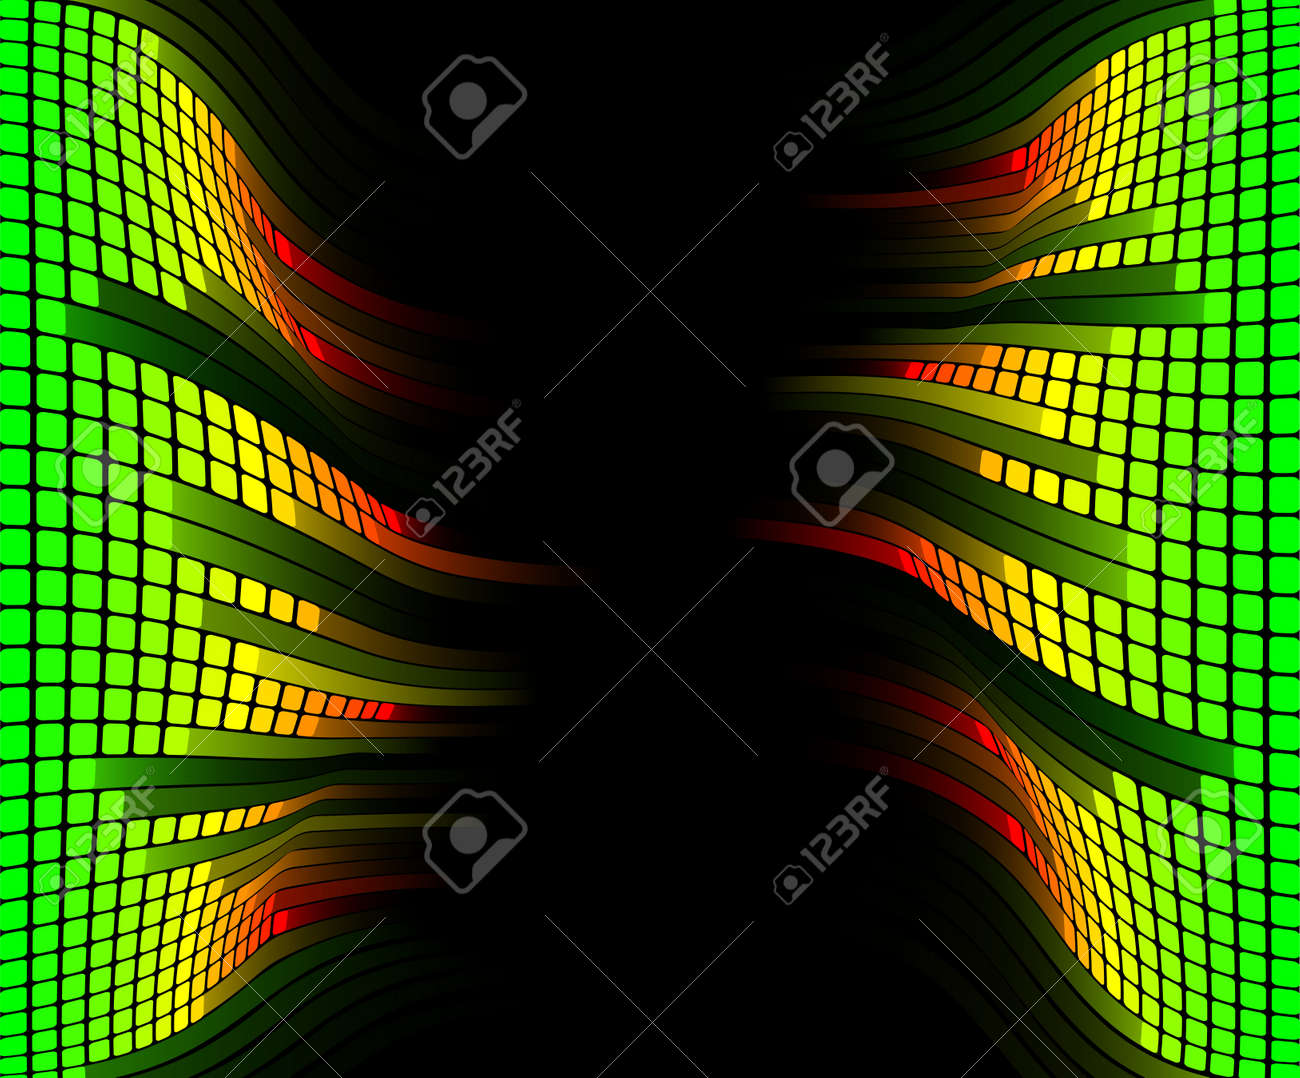 Abstract equaliser music sound background with copyspace in the centre Stock Vector - 9851566